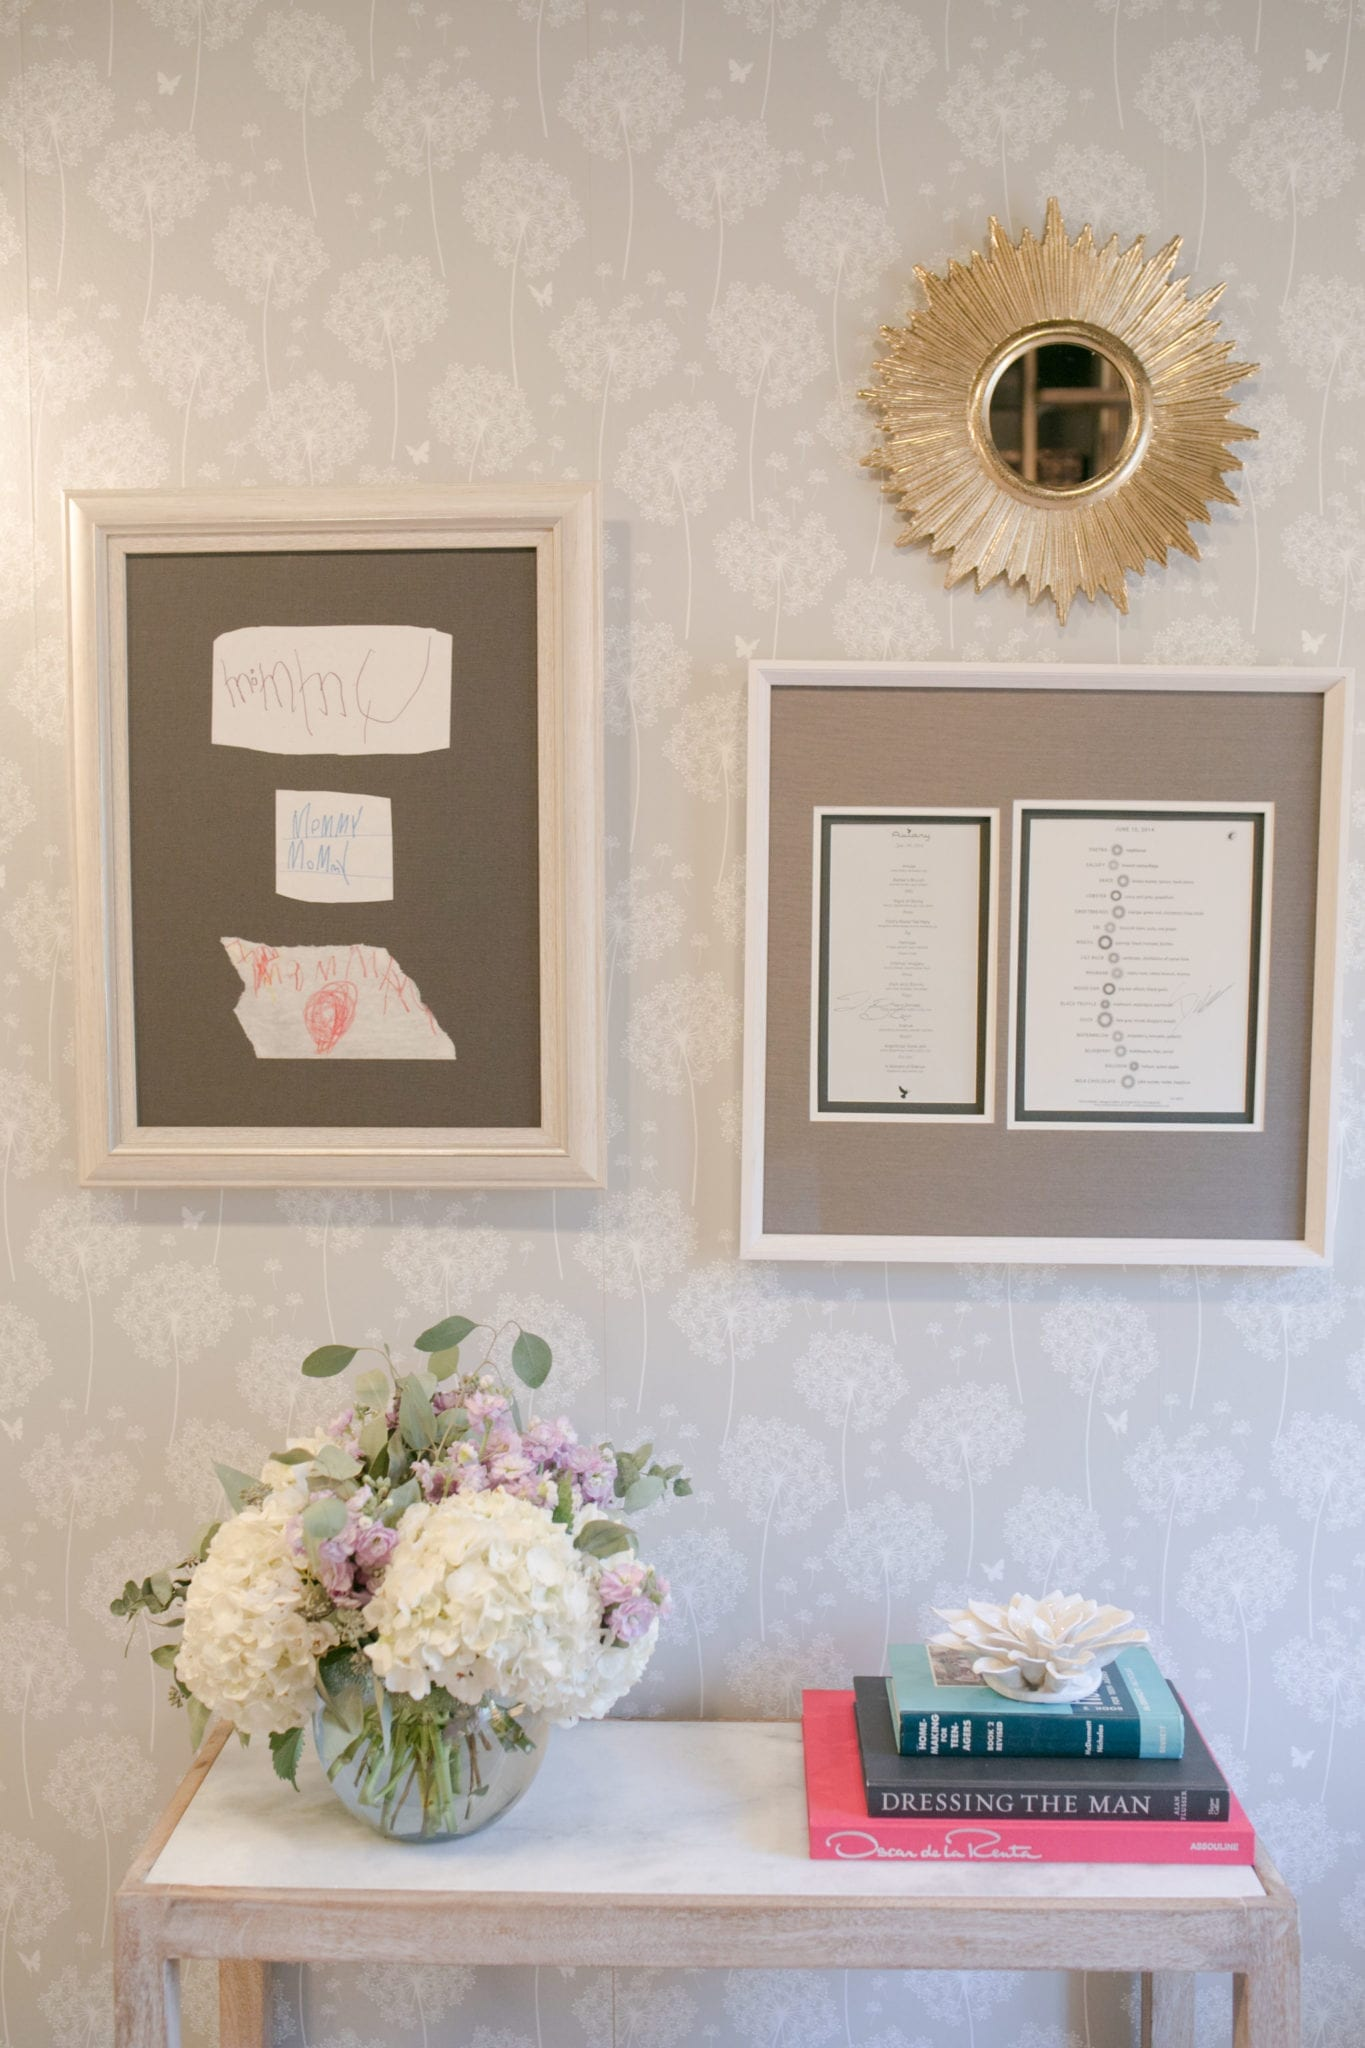 3 Unique Things to Frame